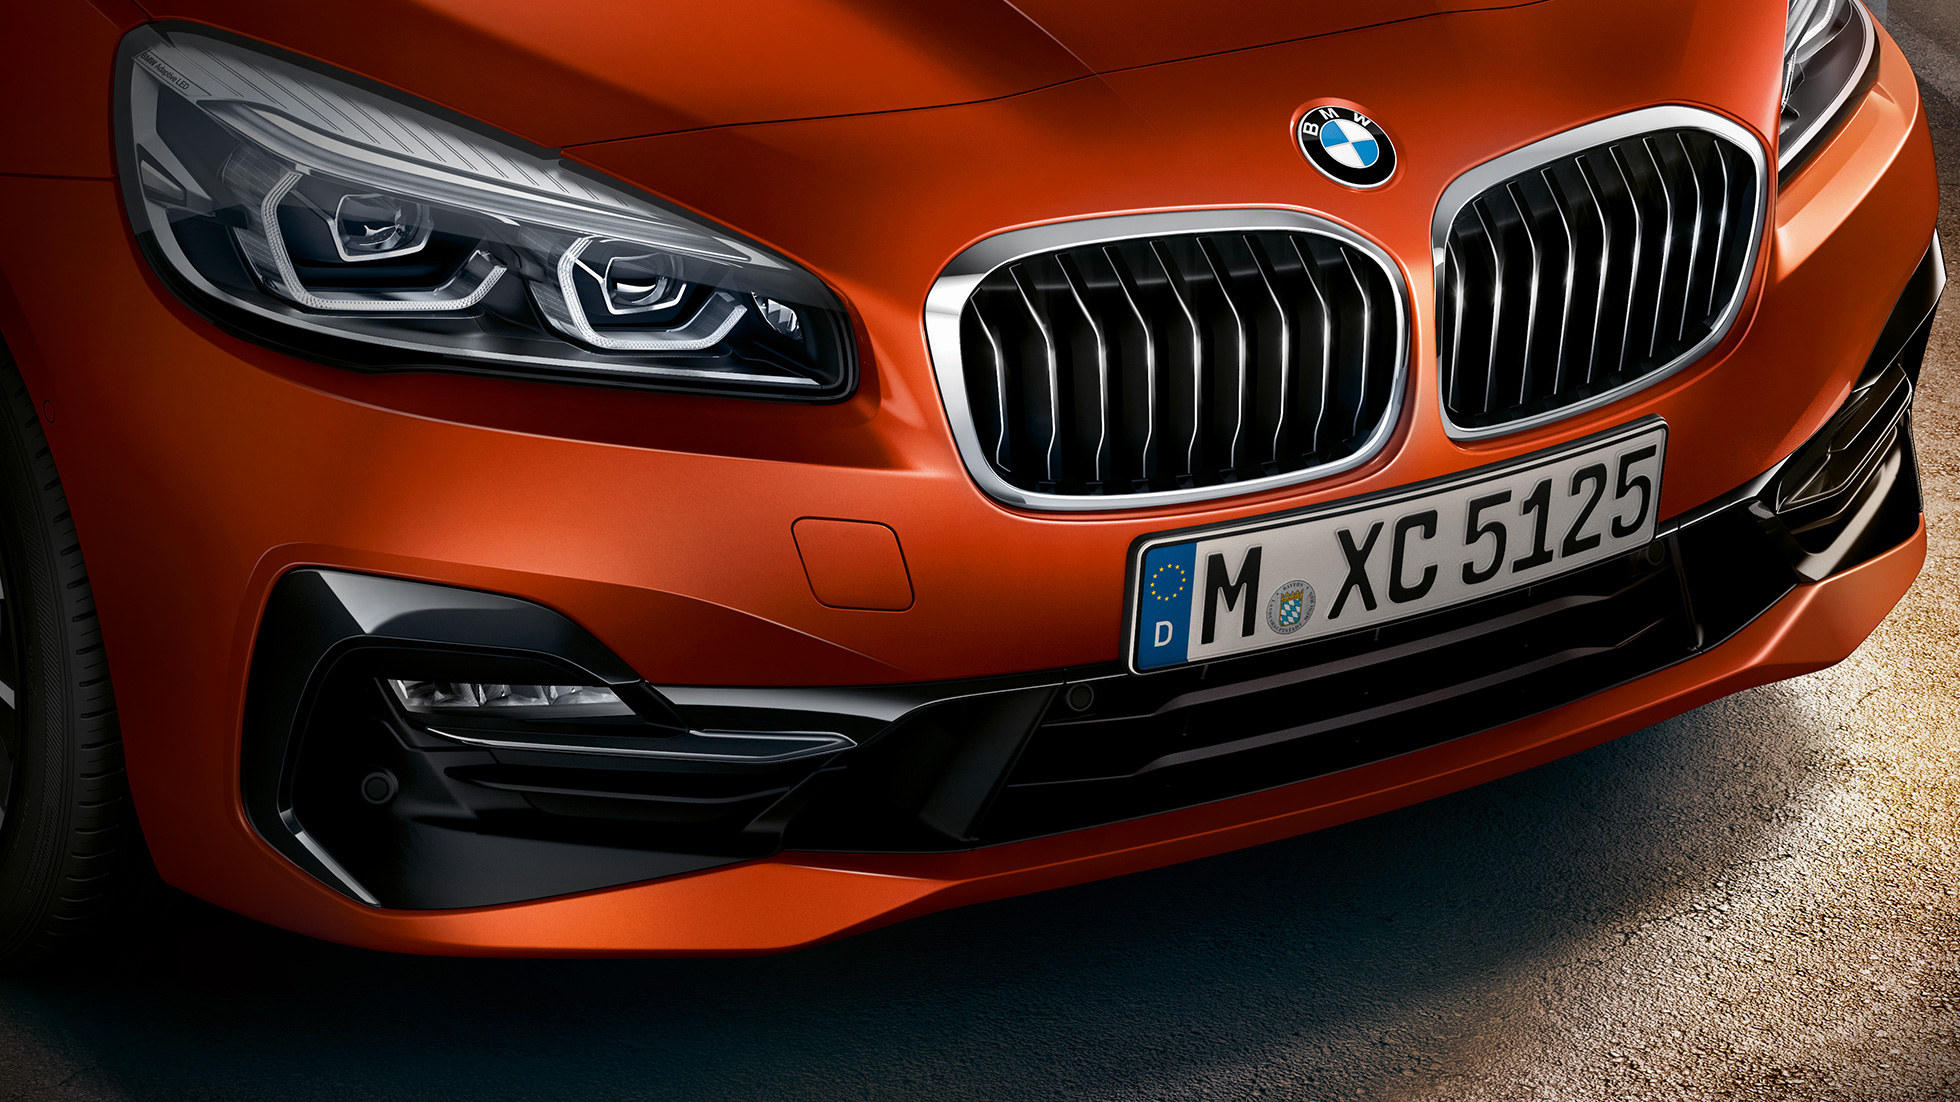 Double kidney grille BMW 2 Series Active Tourer F45 Facelift 2018 Sunset Orange metallic close-up front